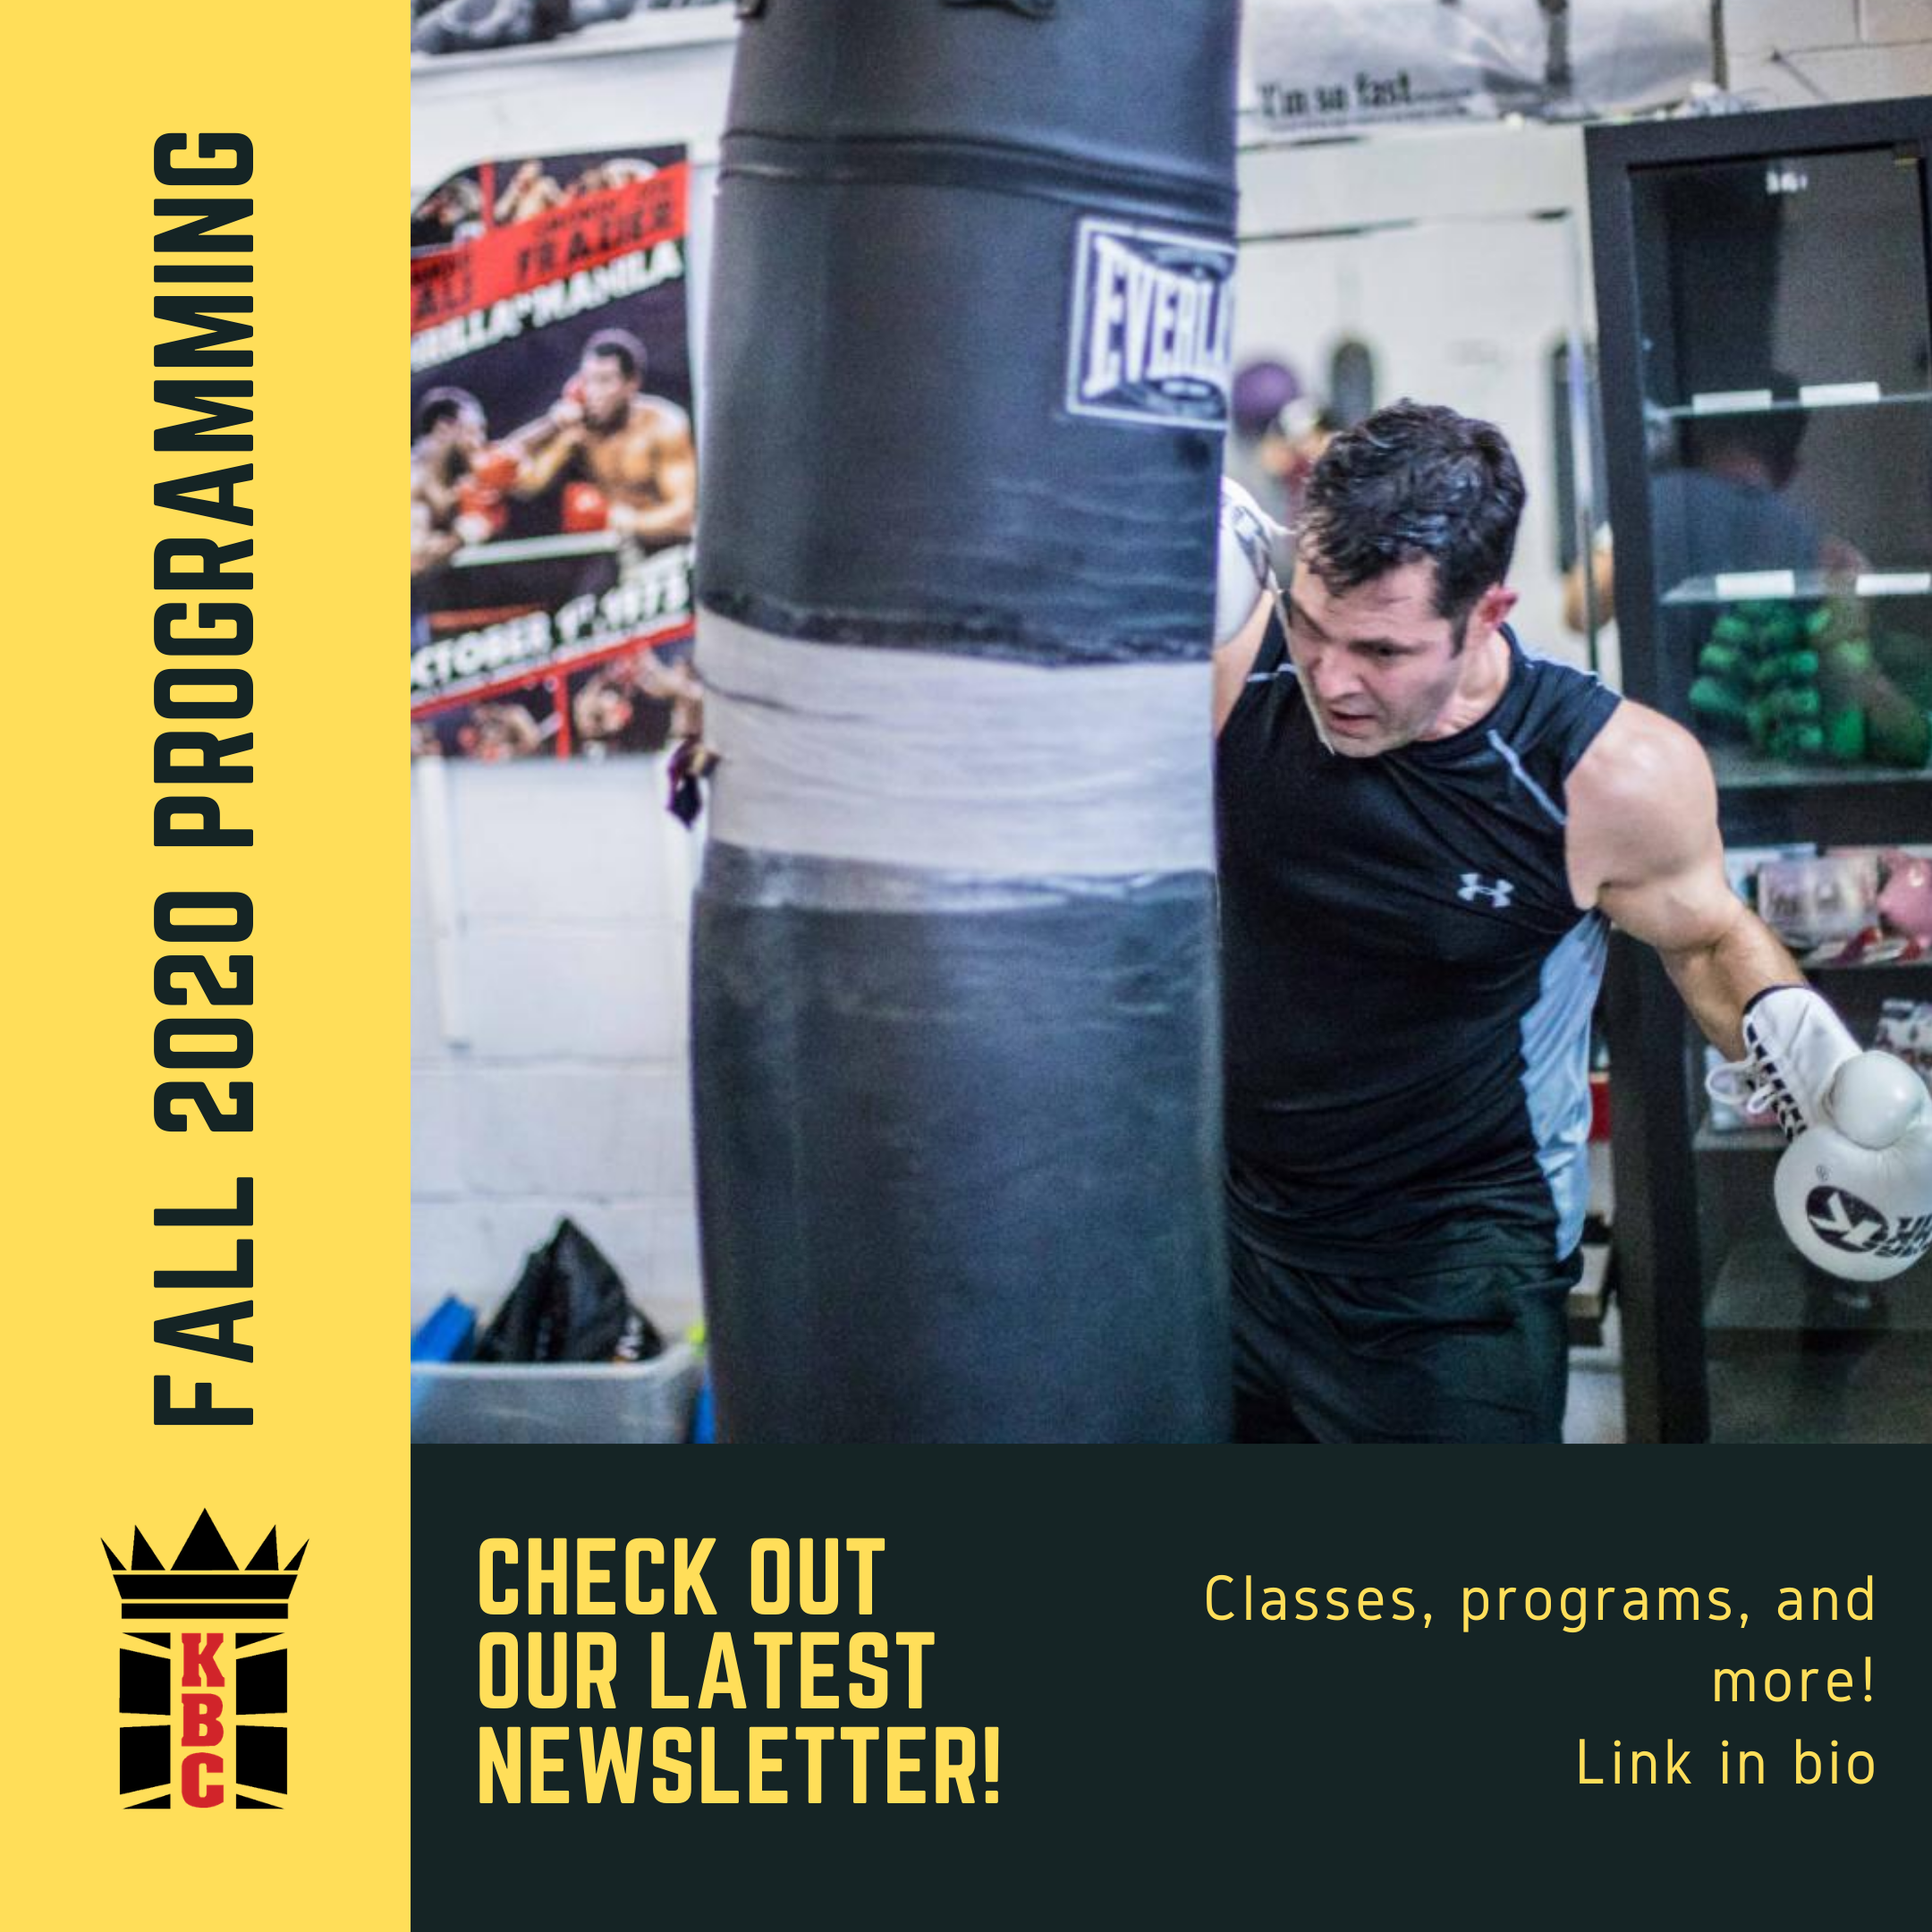 Our Fall Newsletter is LIVE!